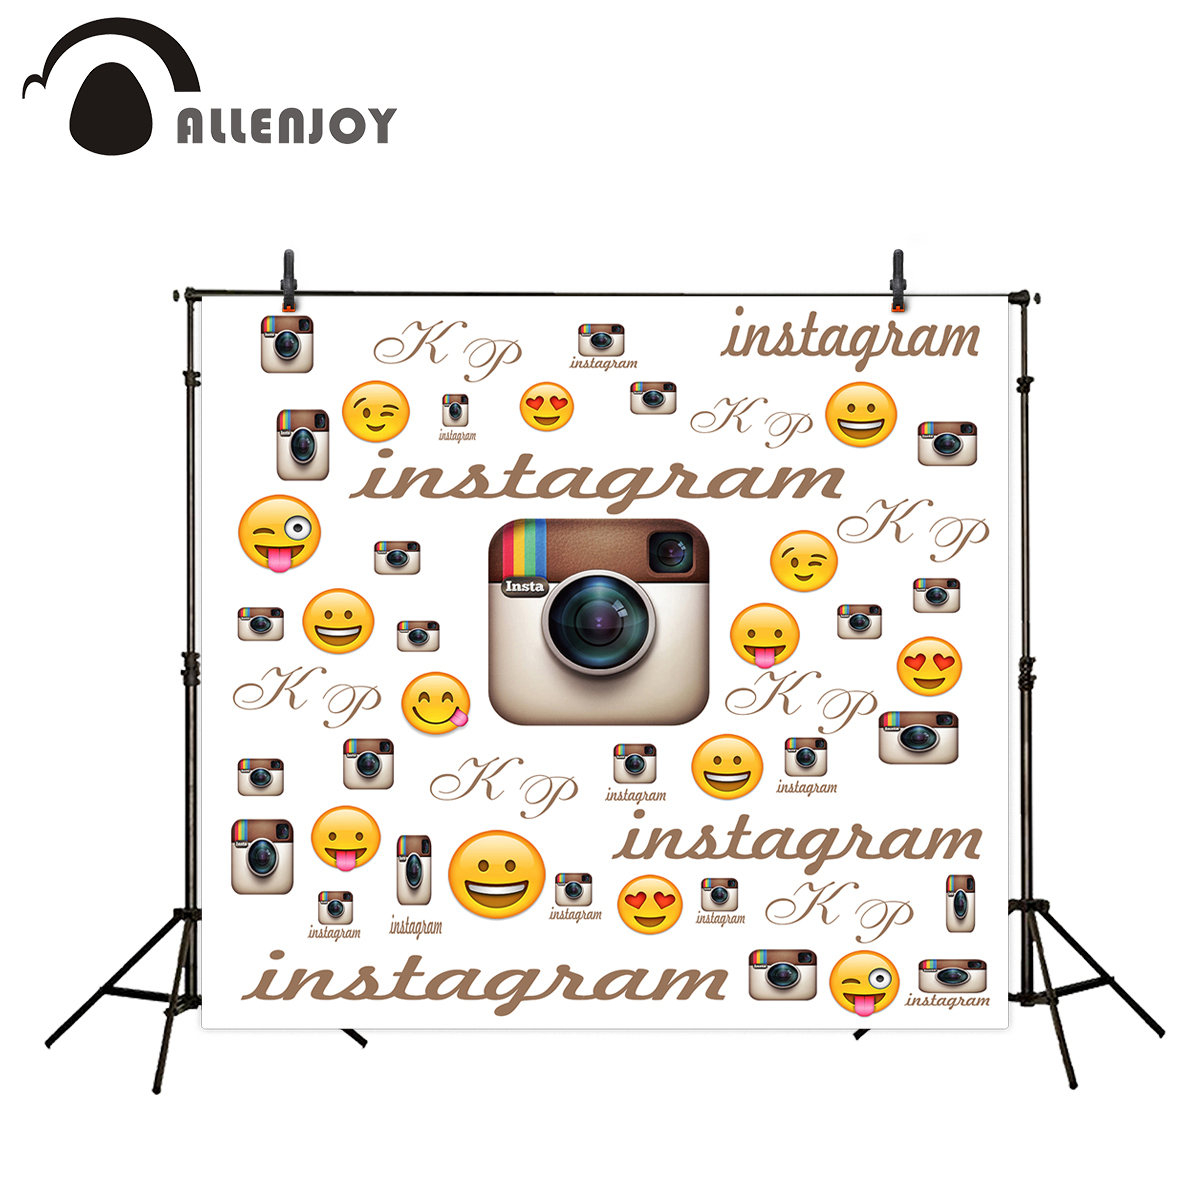 Allenjoy font b camera b font photography Party background instagram Social Network theme emoji font b